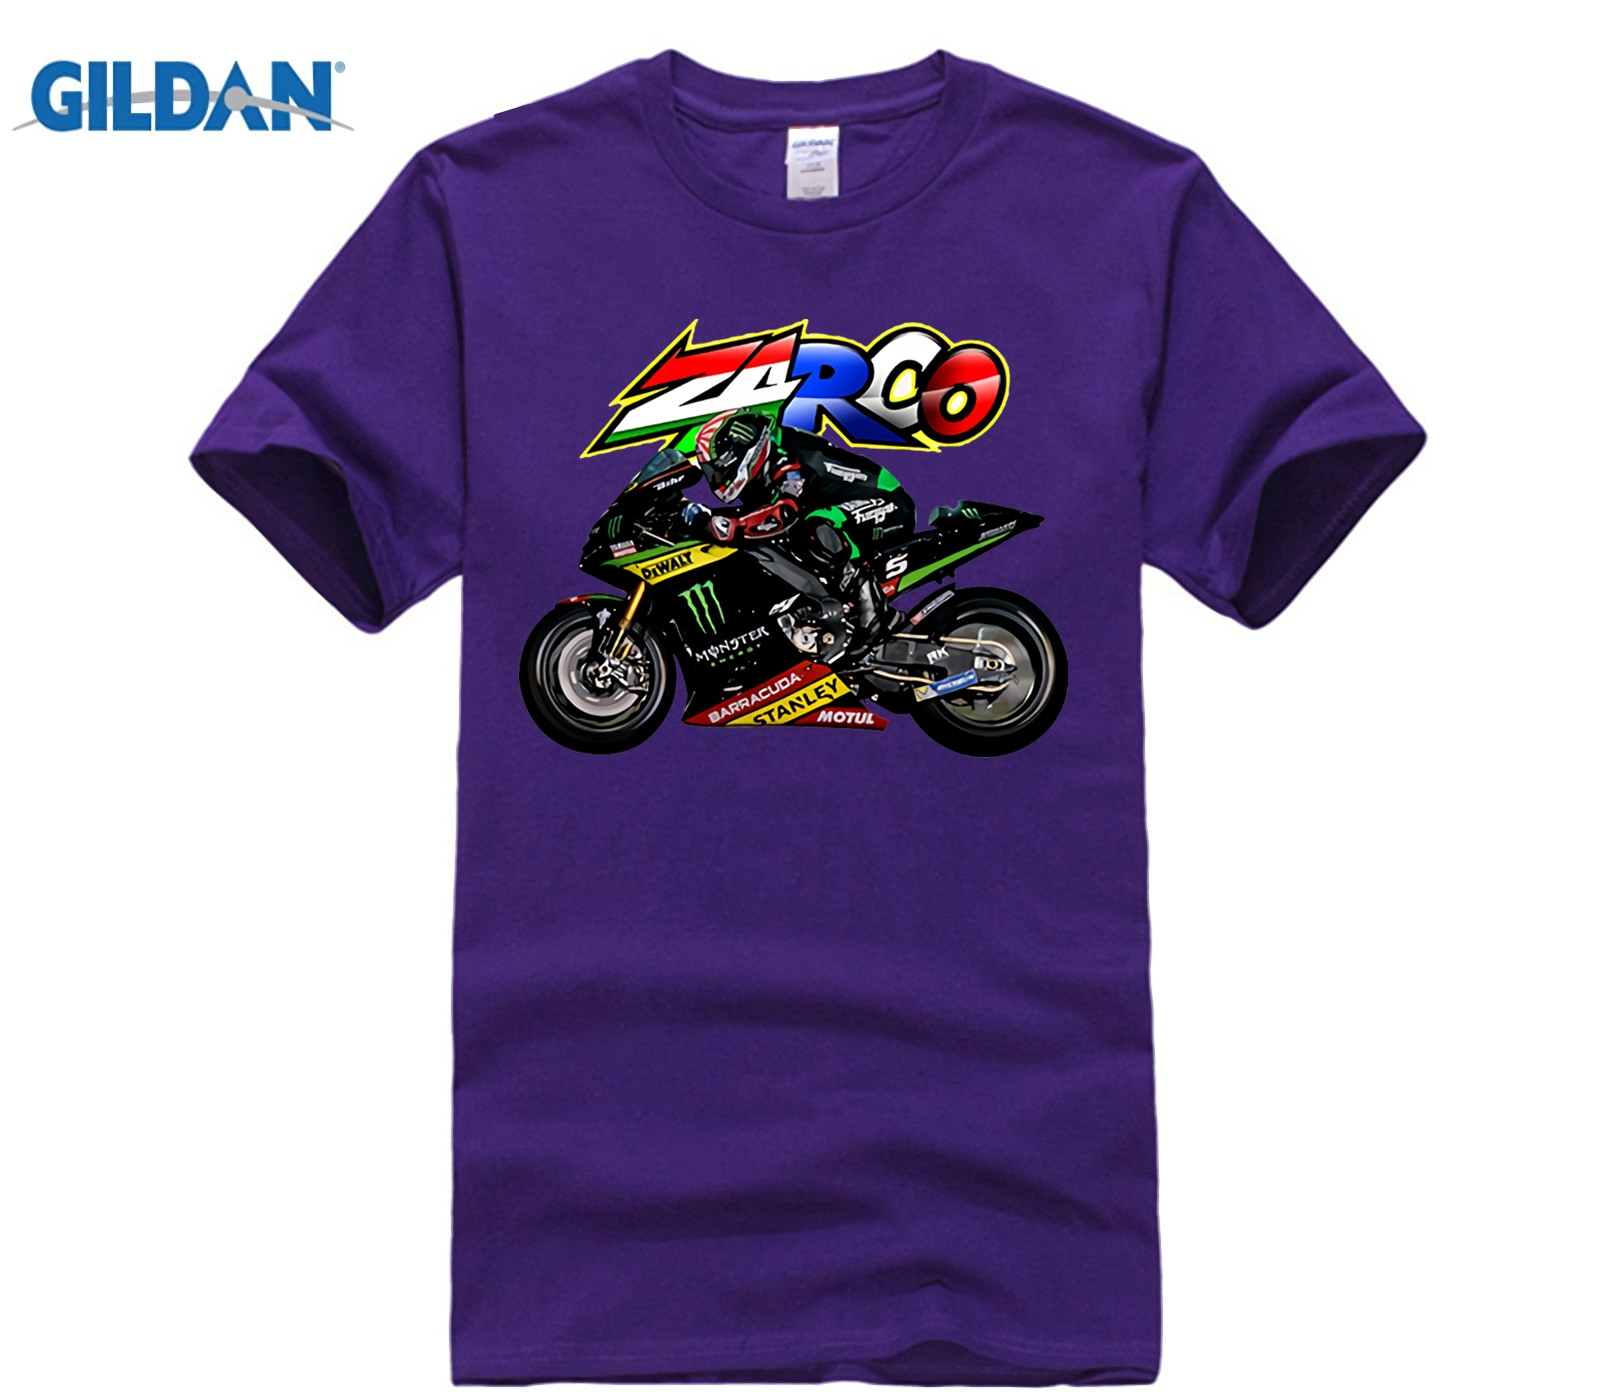 US $7 99 |T Shirt Johann Zarco 5 Moto GP Qatar Doha Test 2019 Adult O  Collar Short Sleeve Cotton Tees T Shirts-in T-Shirts from Men's Clothing on